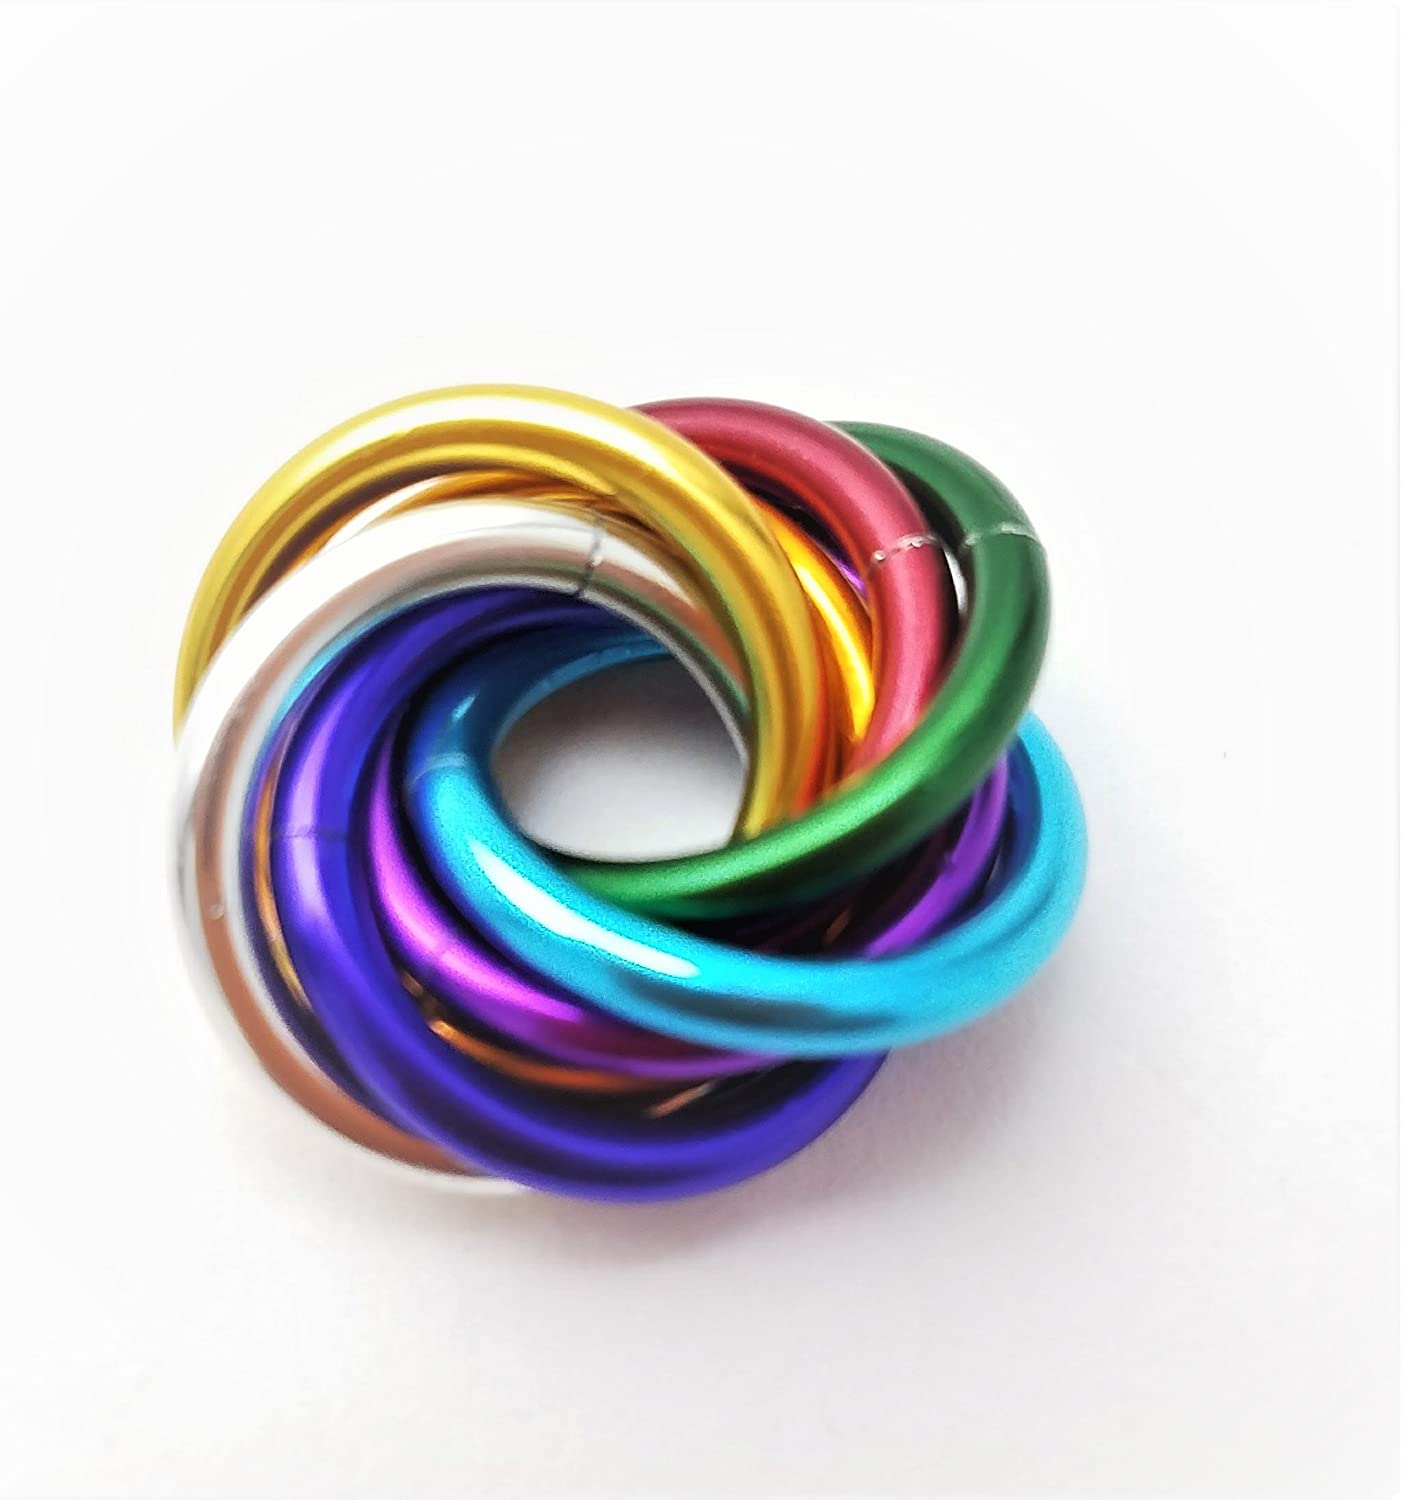 Half M/öbii Ultra Violet Small Mobius Hand Fidget Toy Shiny Stress Rings for Restless Hands Office Toy